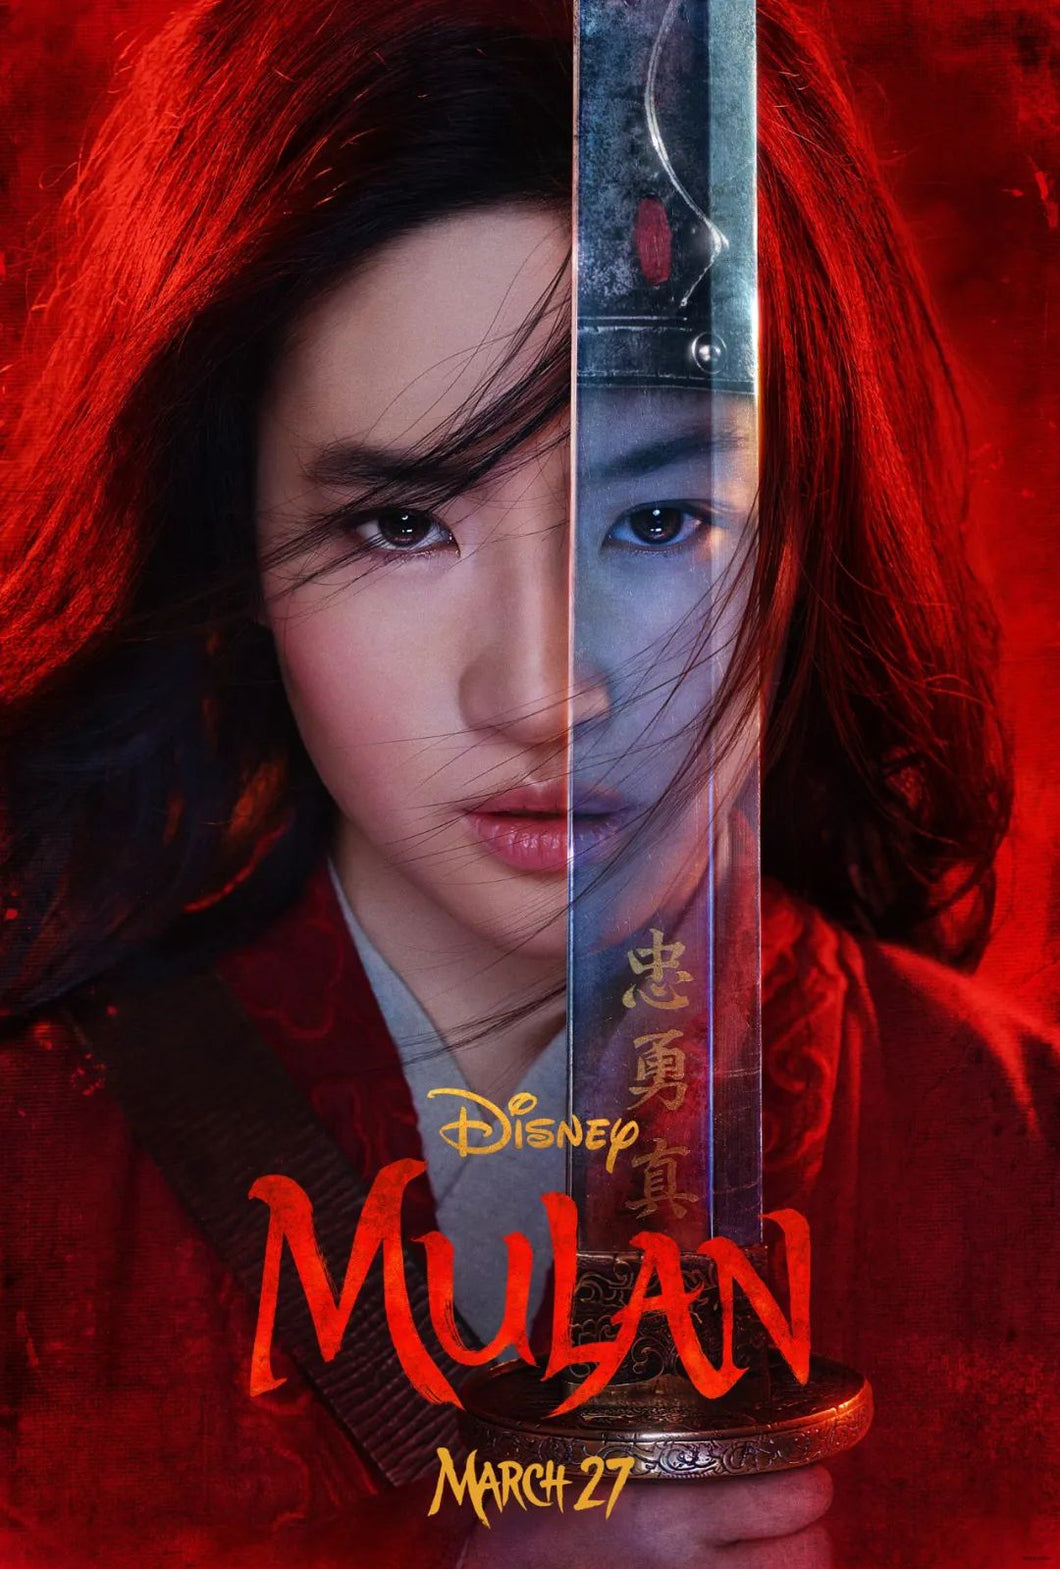 Disney Mulan Movie Poster egoamo.co.za Posters